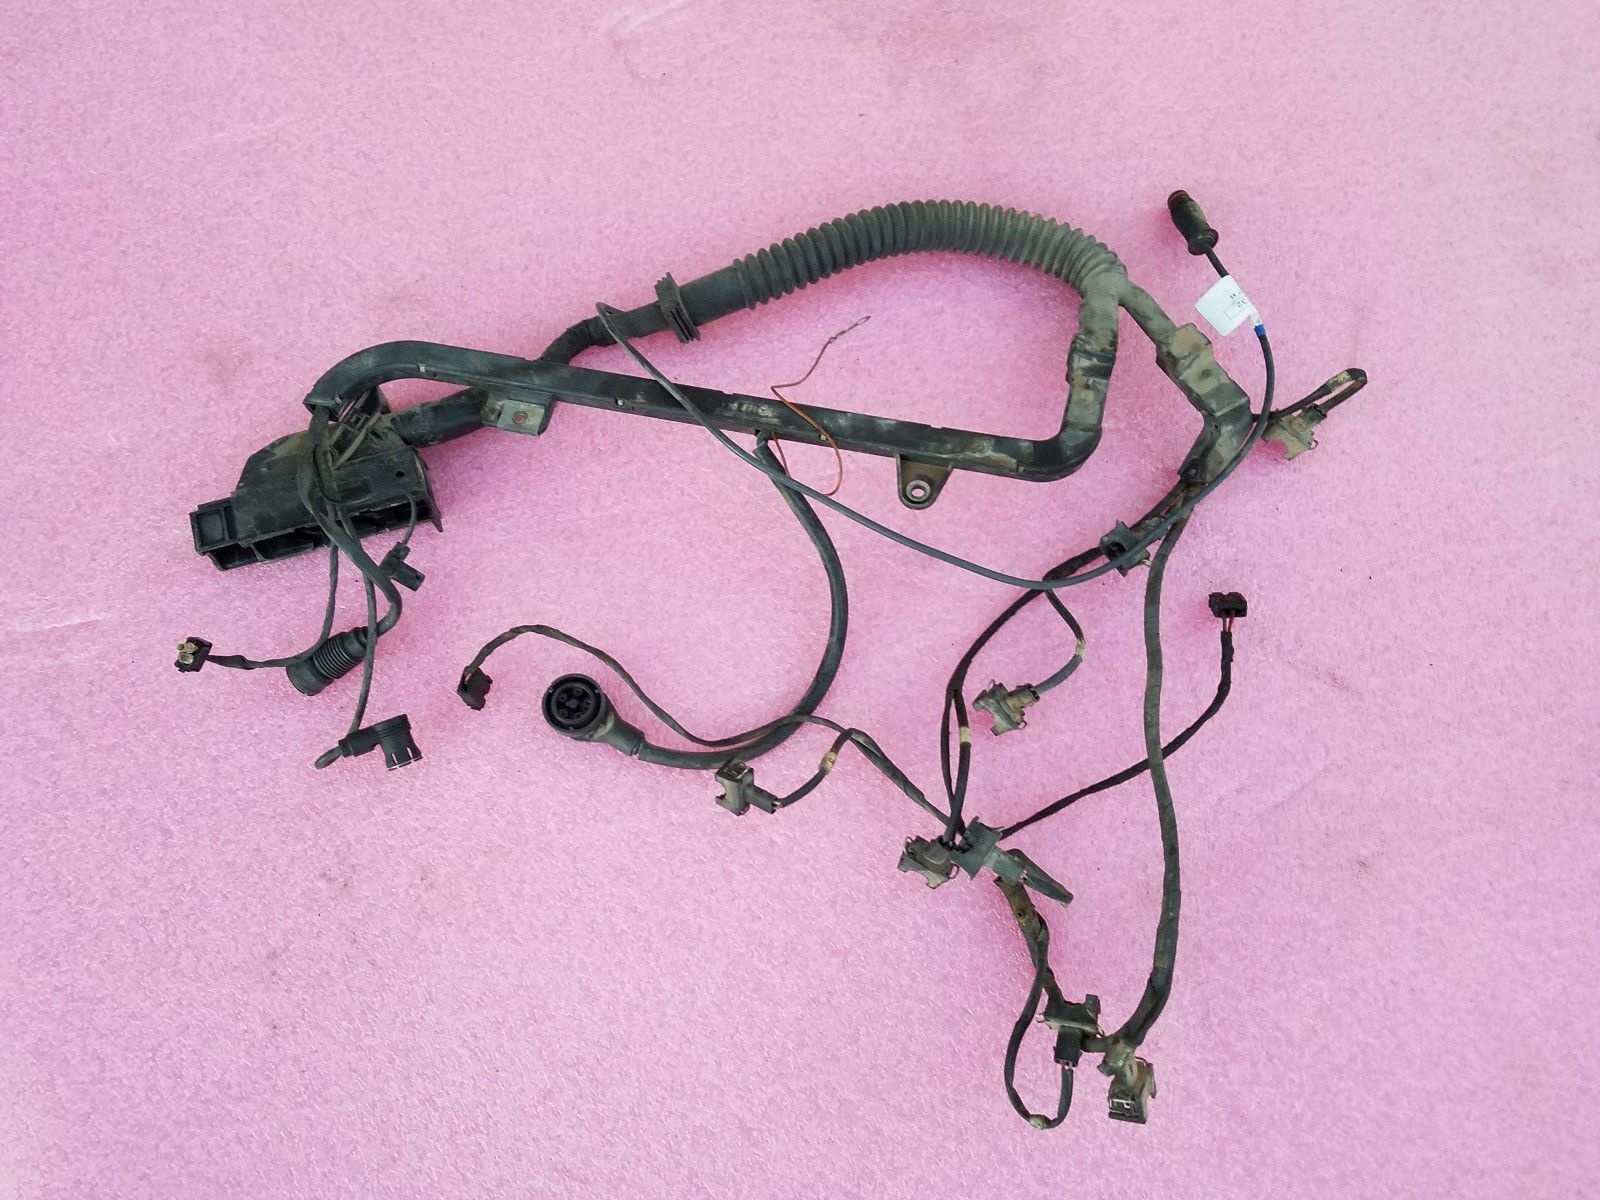 93-95 mercedes s500 s420 updated engine wiring harness 140 ... on